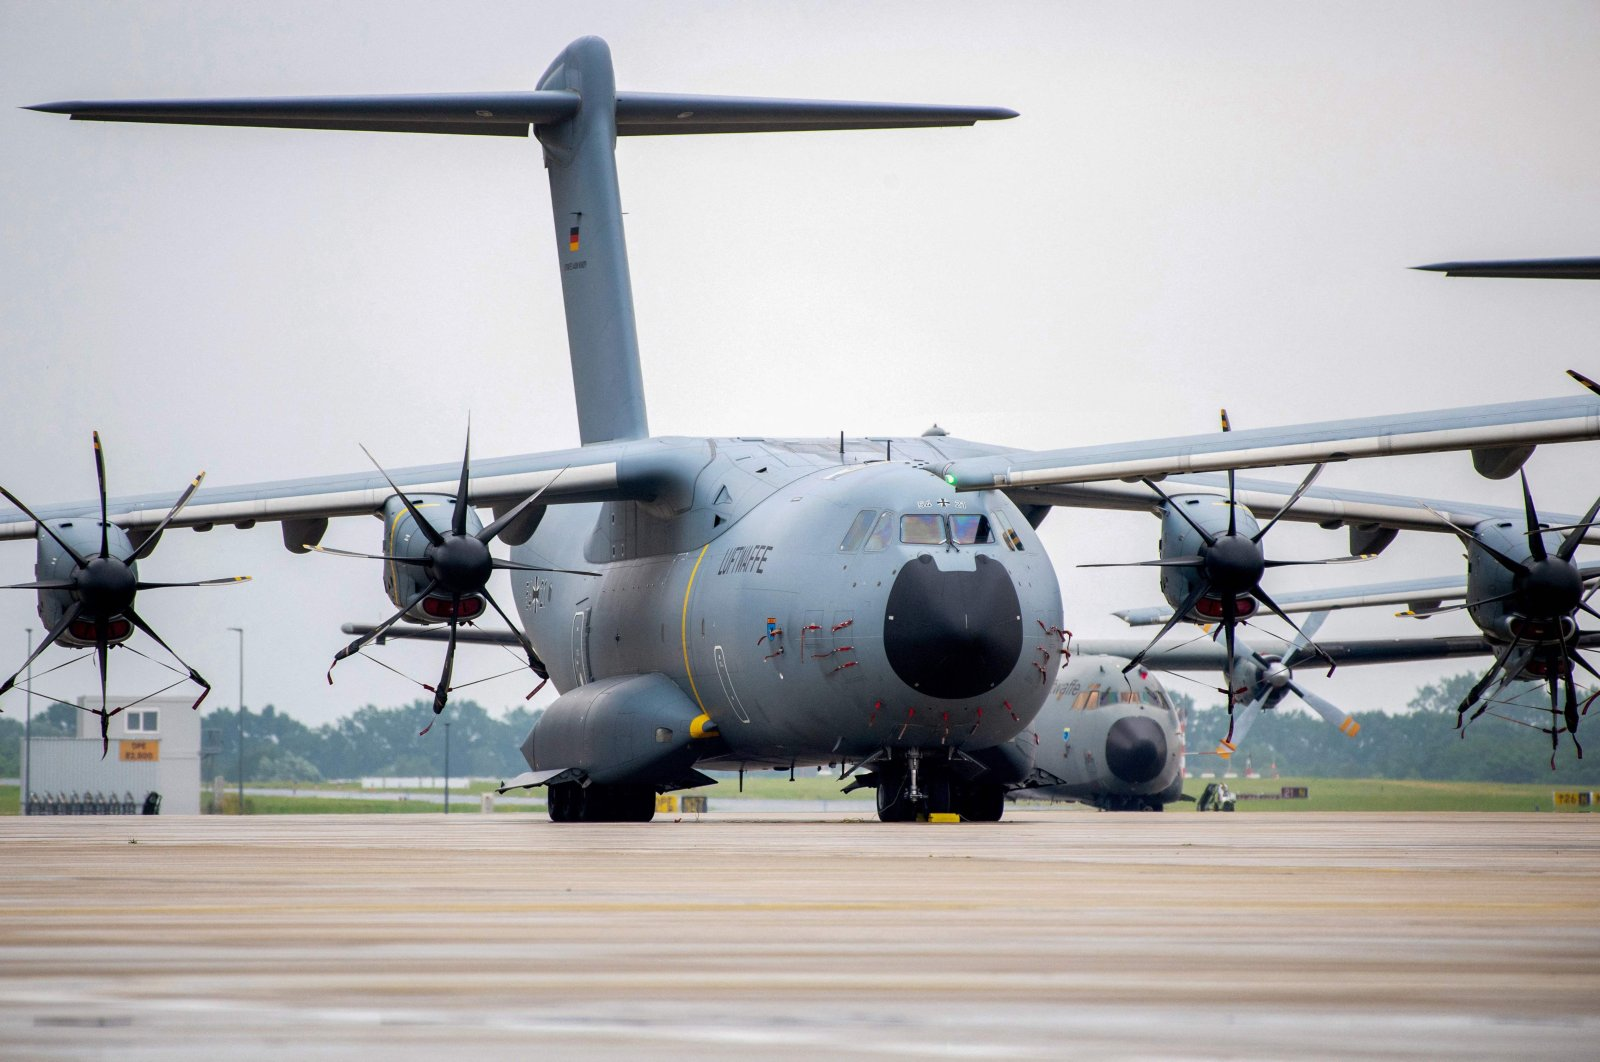 Airbus A400M cargo planes of the German armed forces Bundeswehr stand on the tarmac at the military air base in Wunstorf, northern Germany, on June 30, 2021, as German soldiers returning from Afghanistan are expected to land here. (AFP Photo)